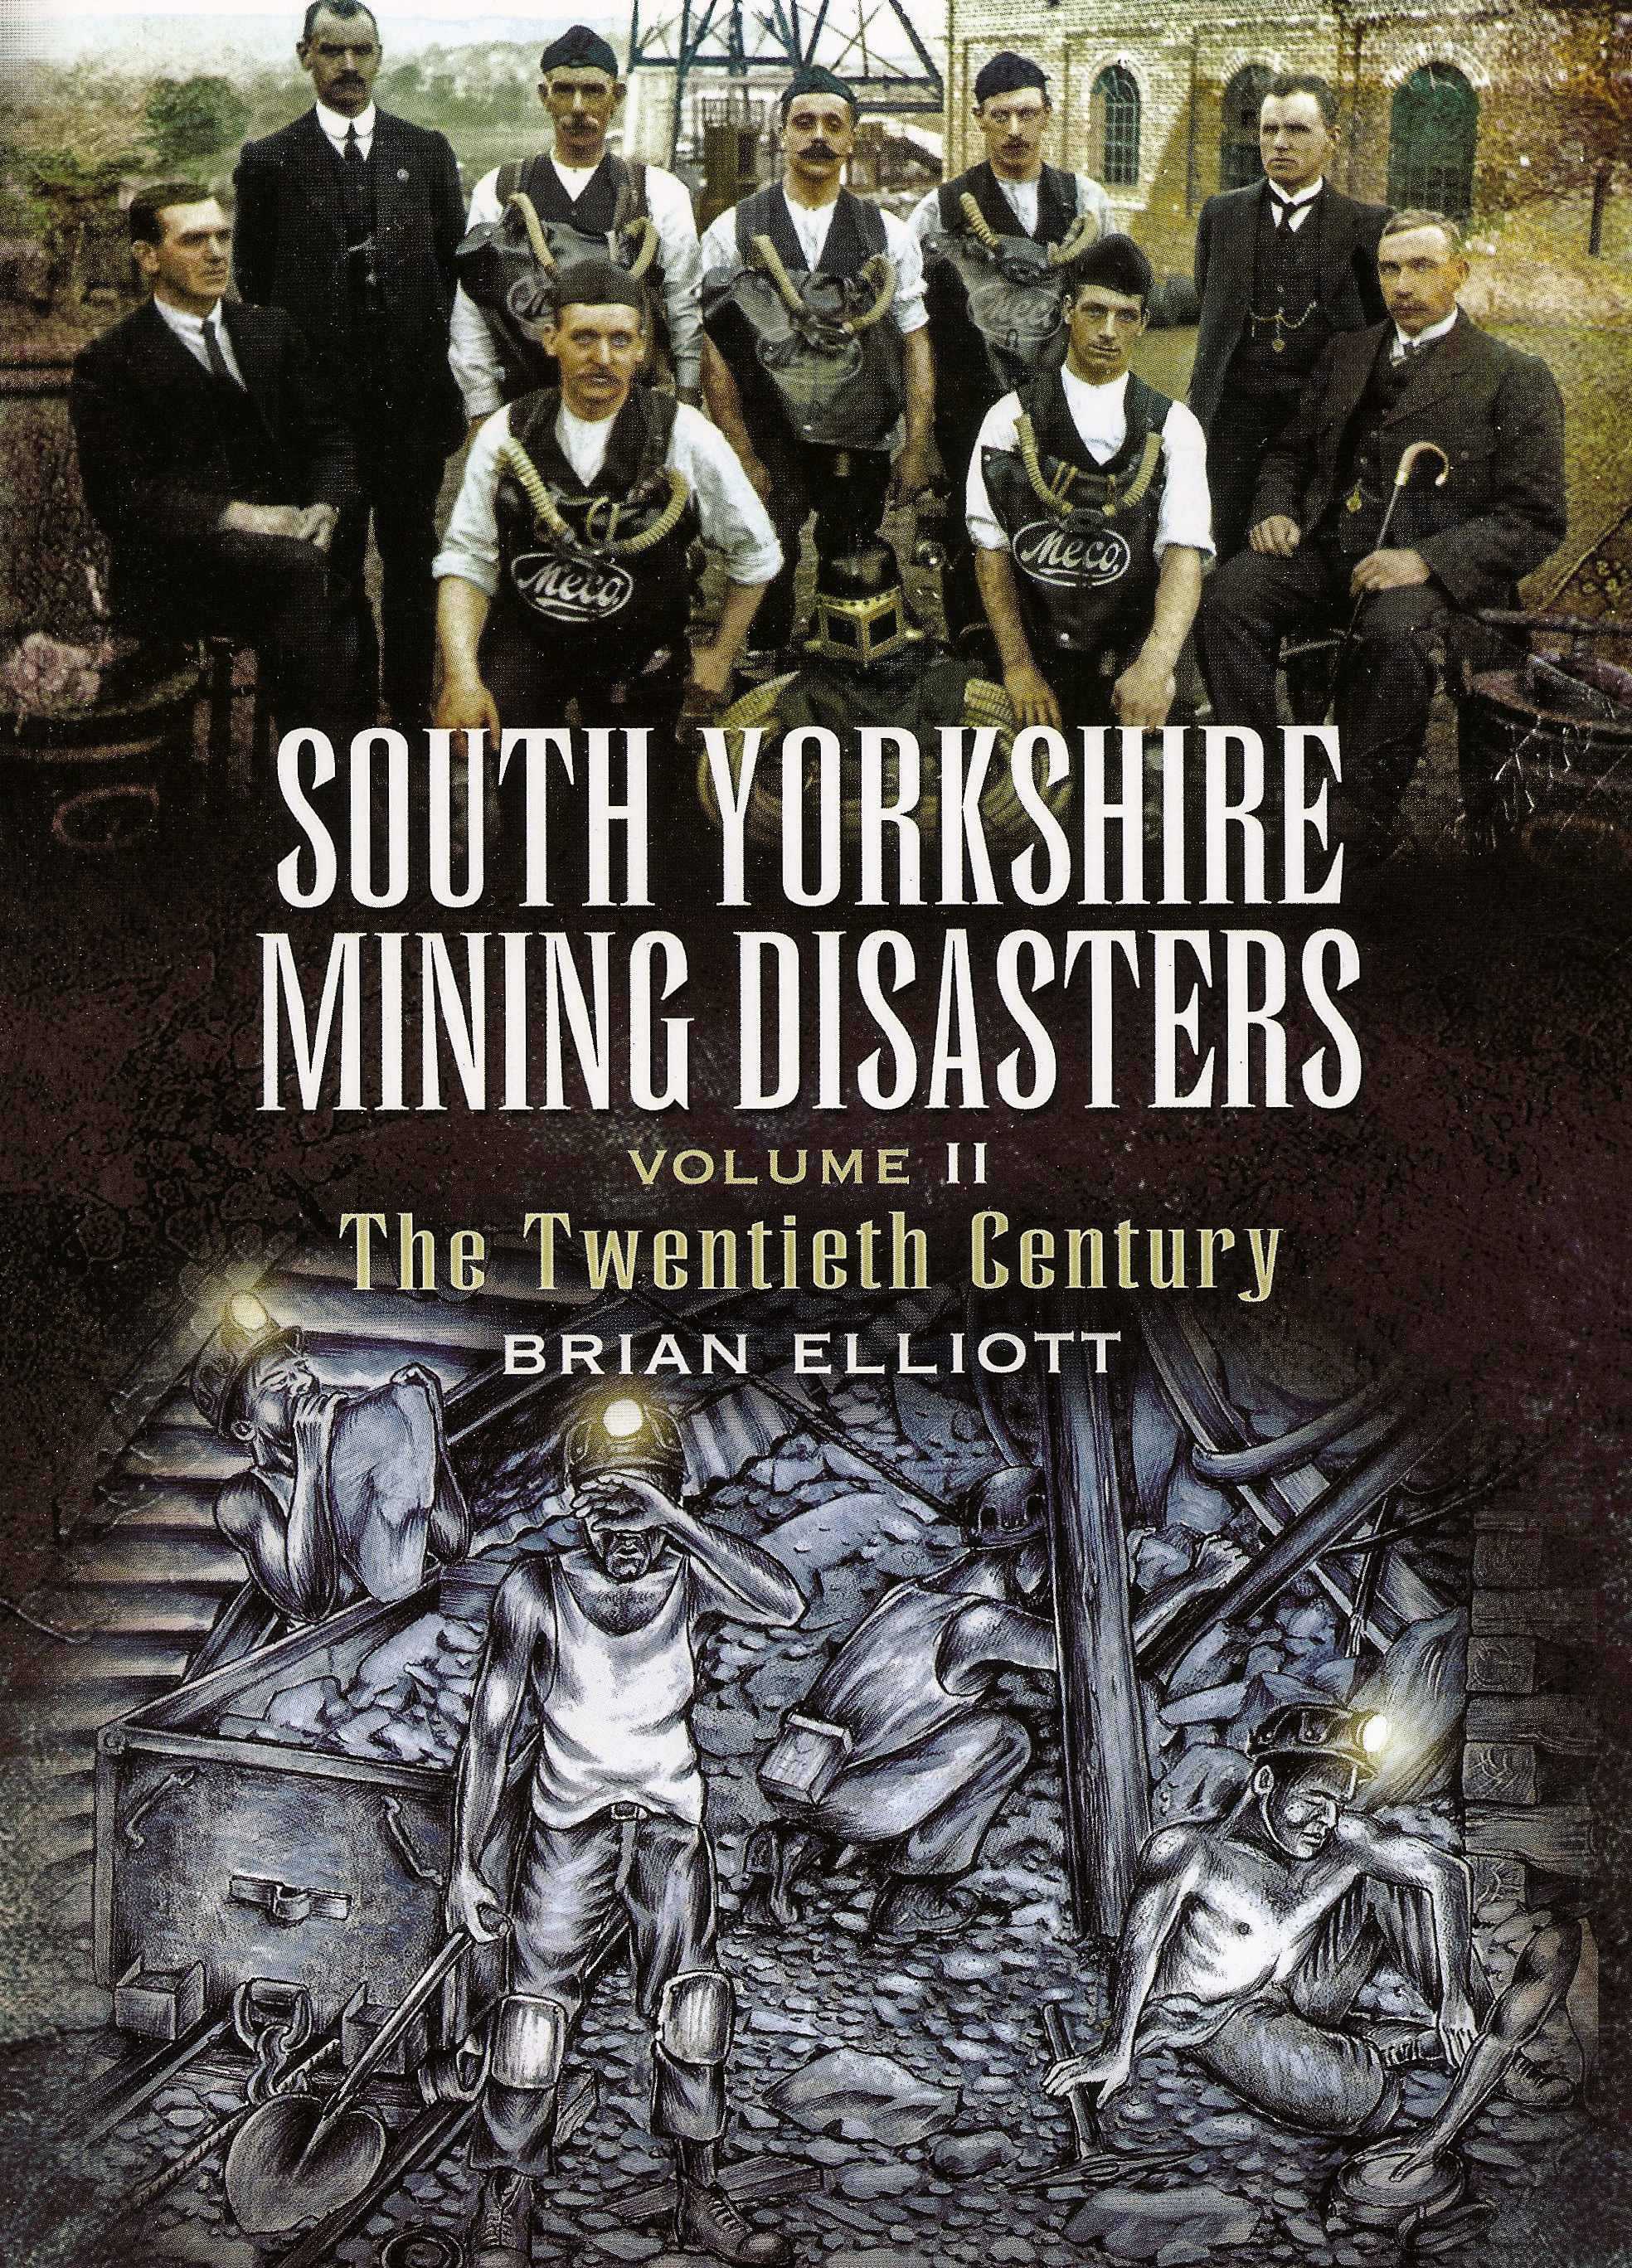 South Yorkshire mining disasters. Volume II